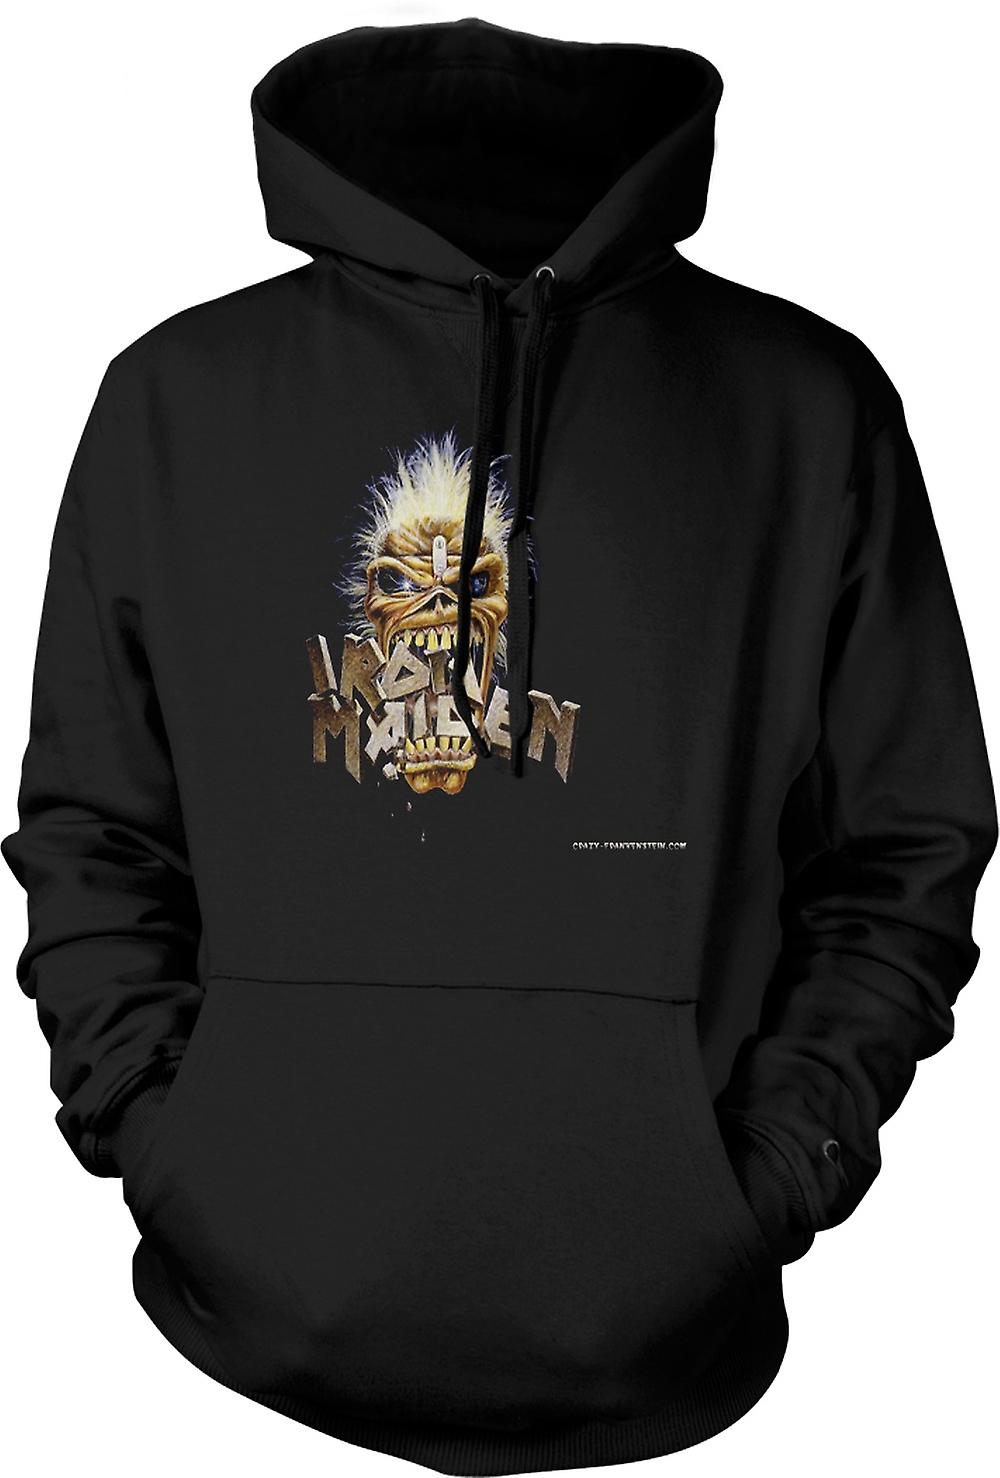 Kids Hoodie - Iron Maiden - Eddie Eating Words